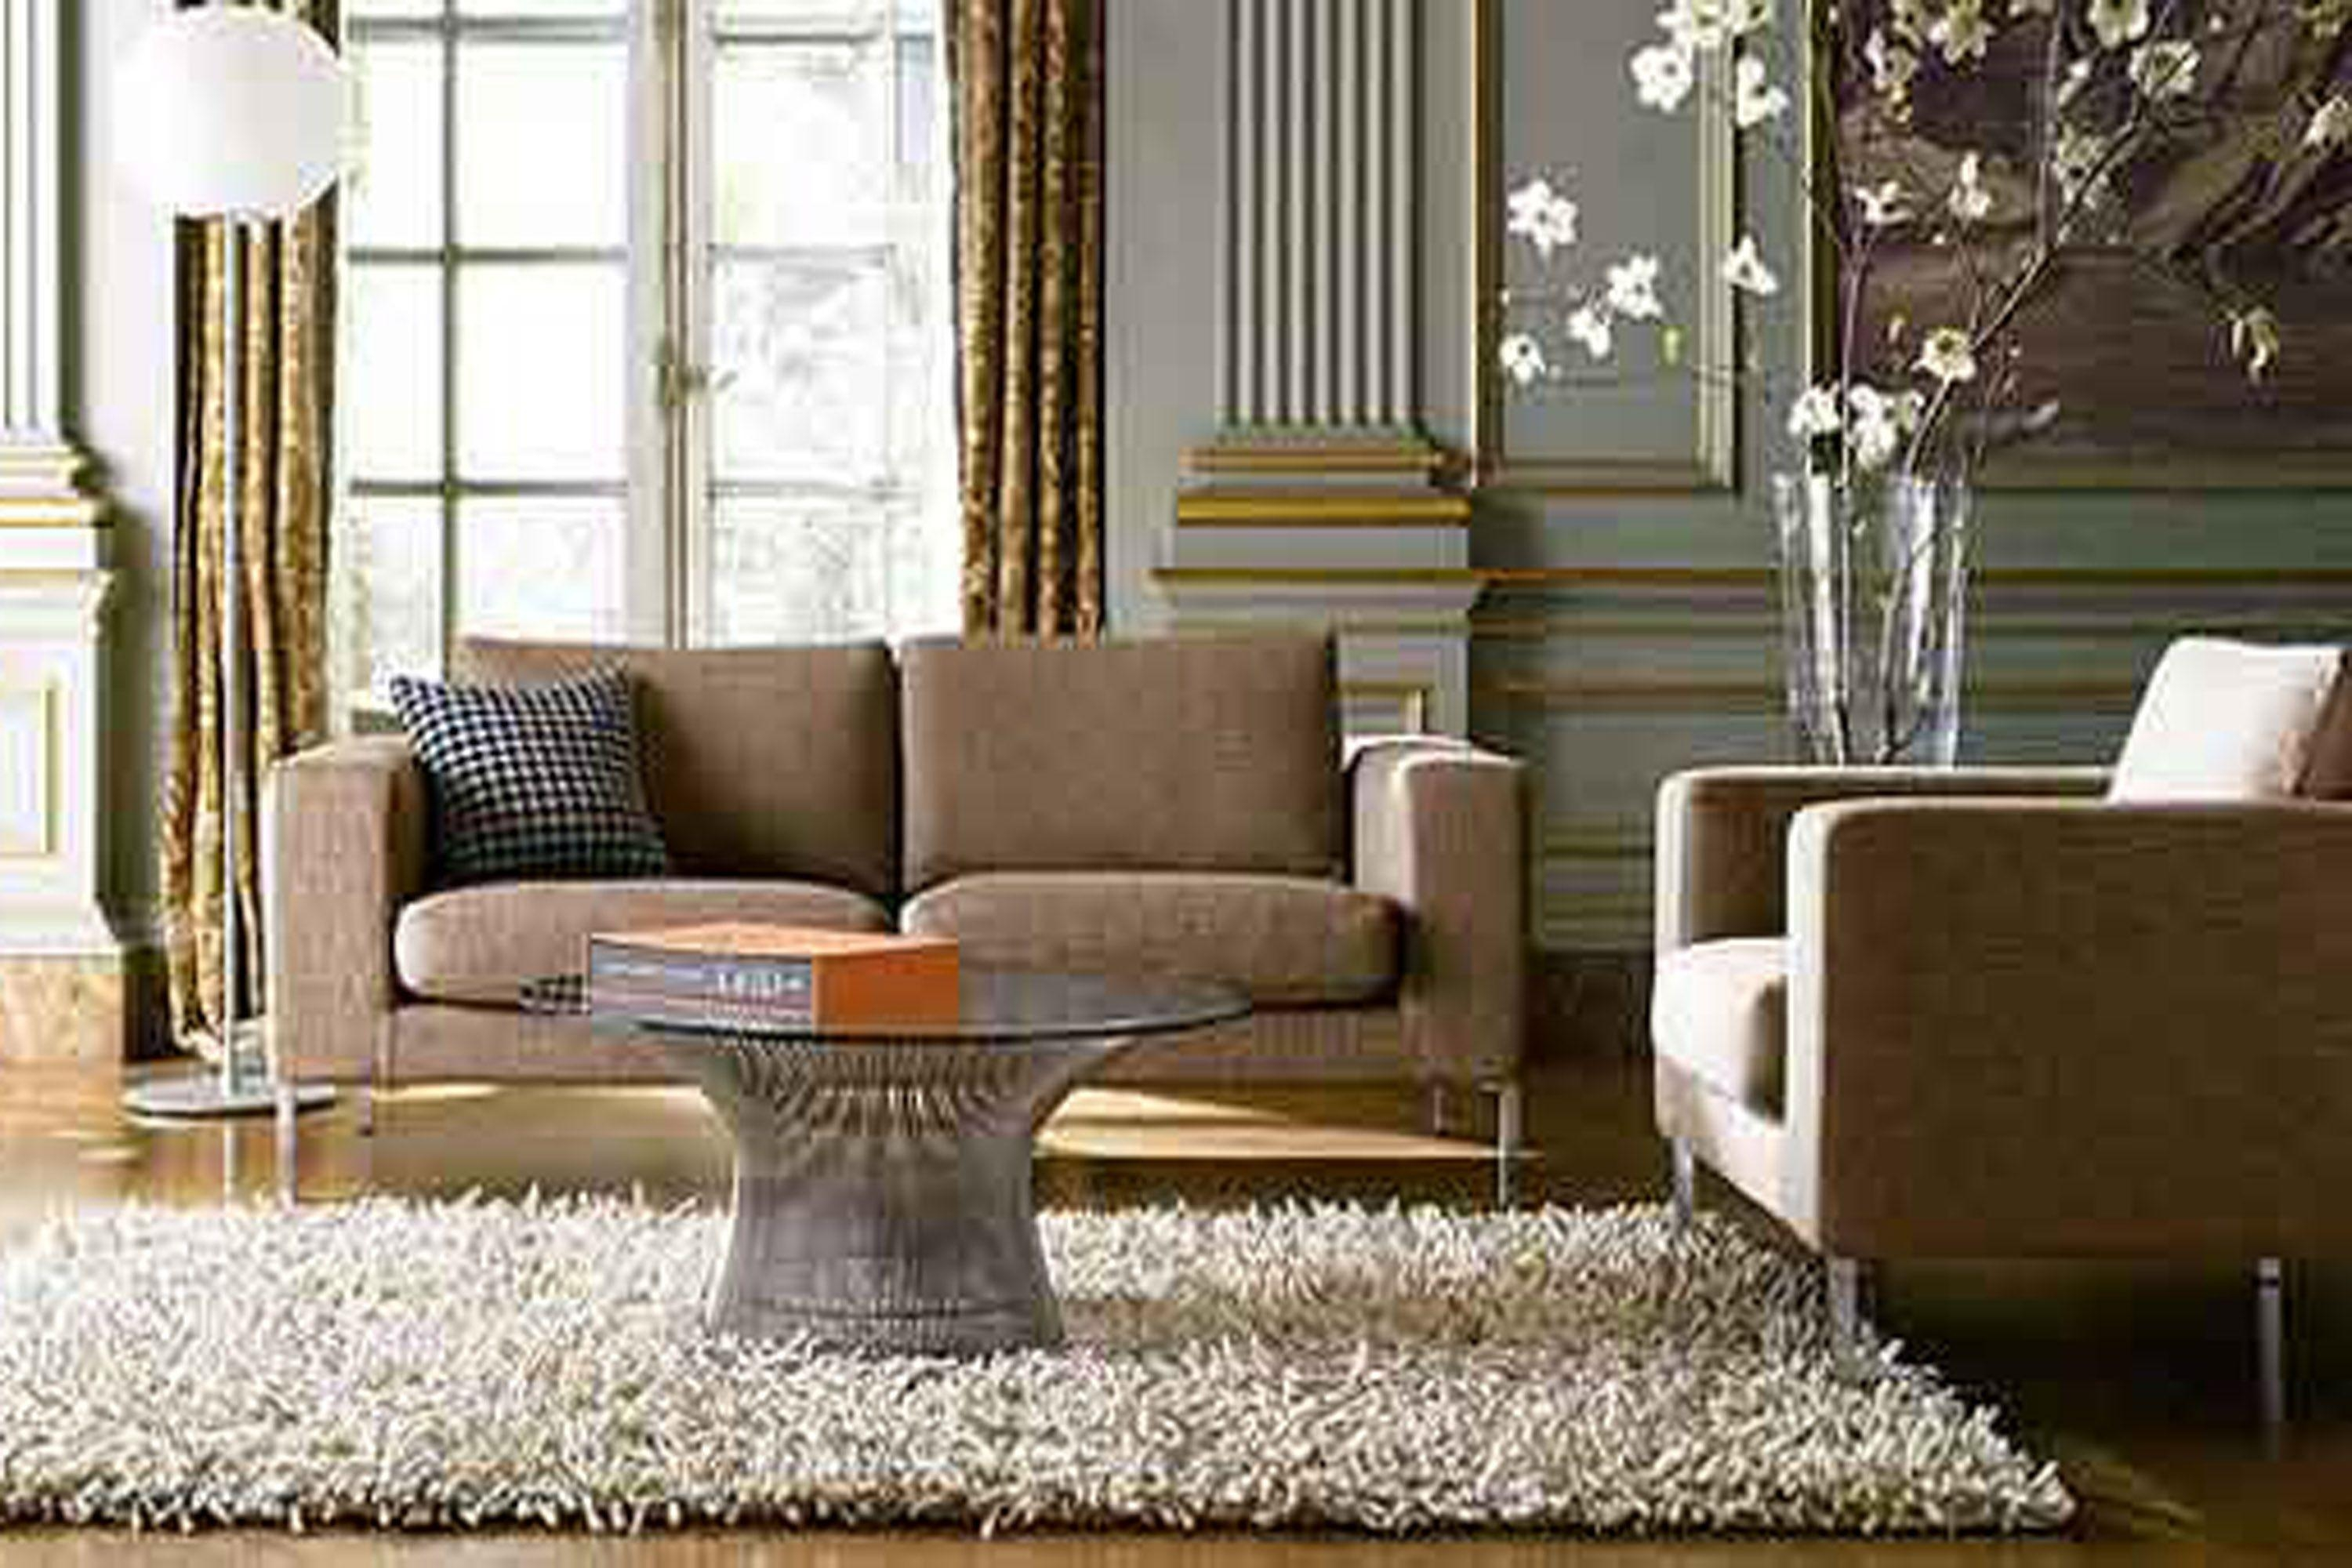 Brown Sofa Sets Look Nice In Living Room With White Flower Decor Throughout Brown Sofa Decors (Image 12 of 20)